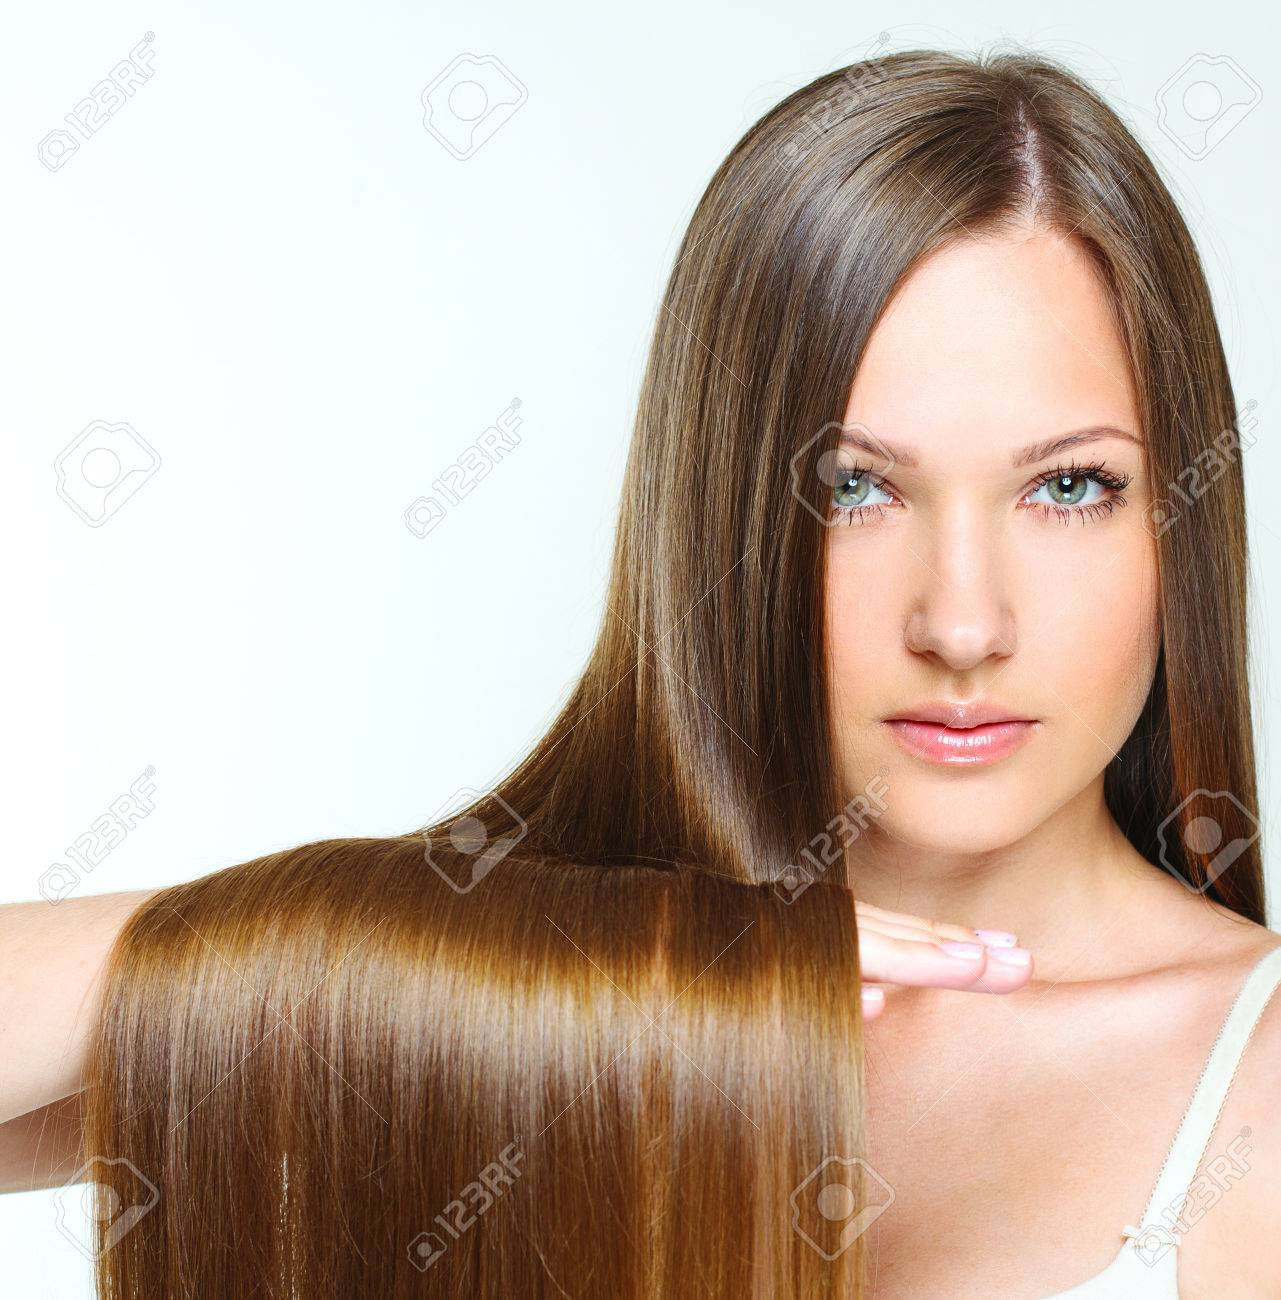 close-up portrait of a beautiful girl with brown long shiny hair. attractive girl with healthy long hair. natural hair. - 28215021